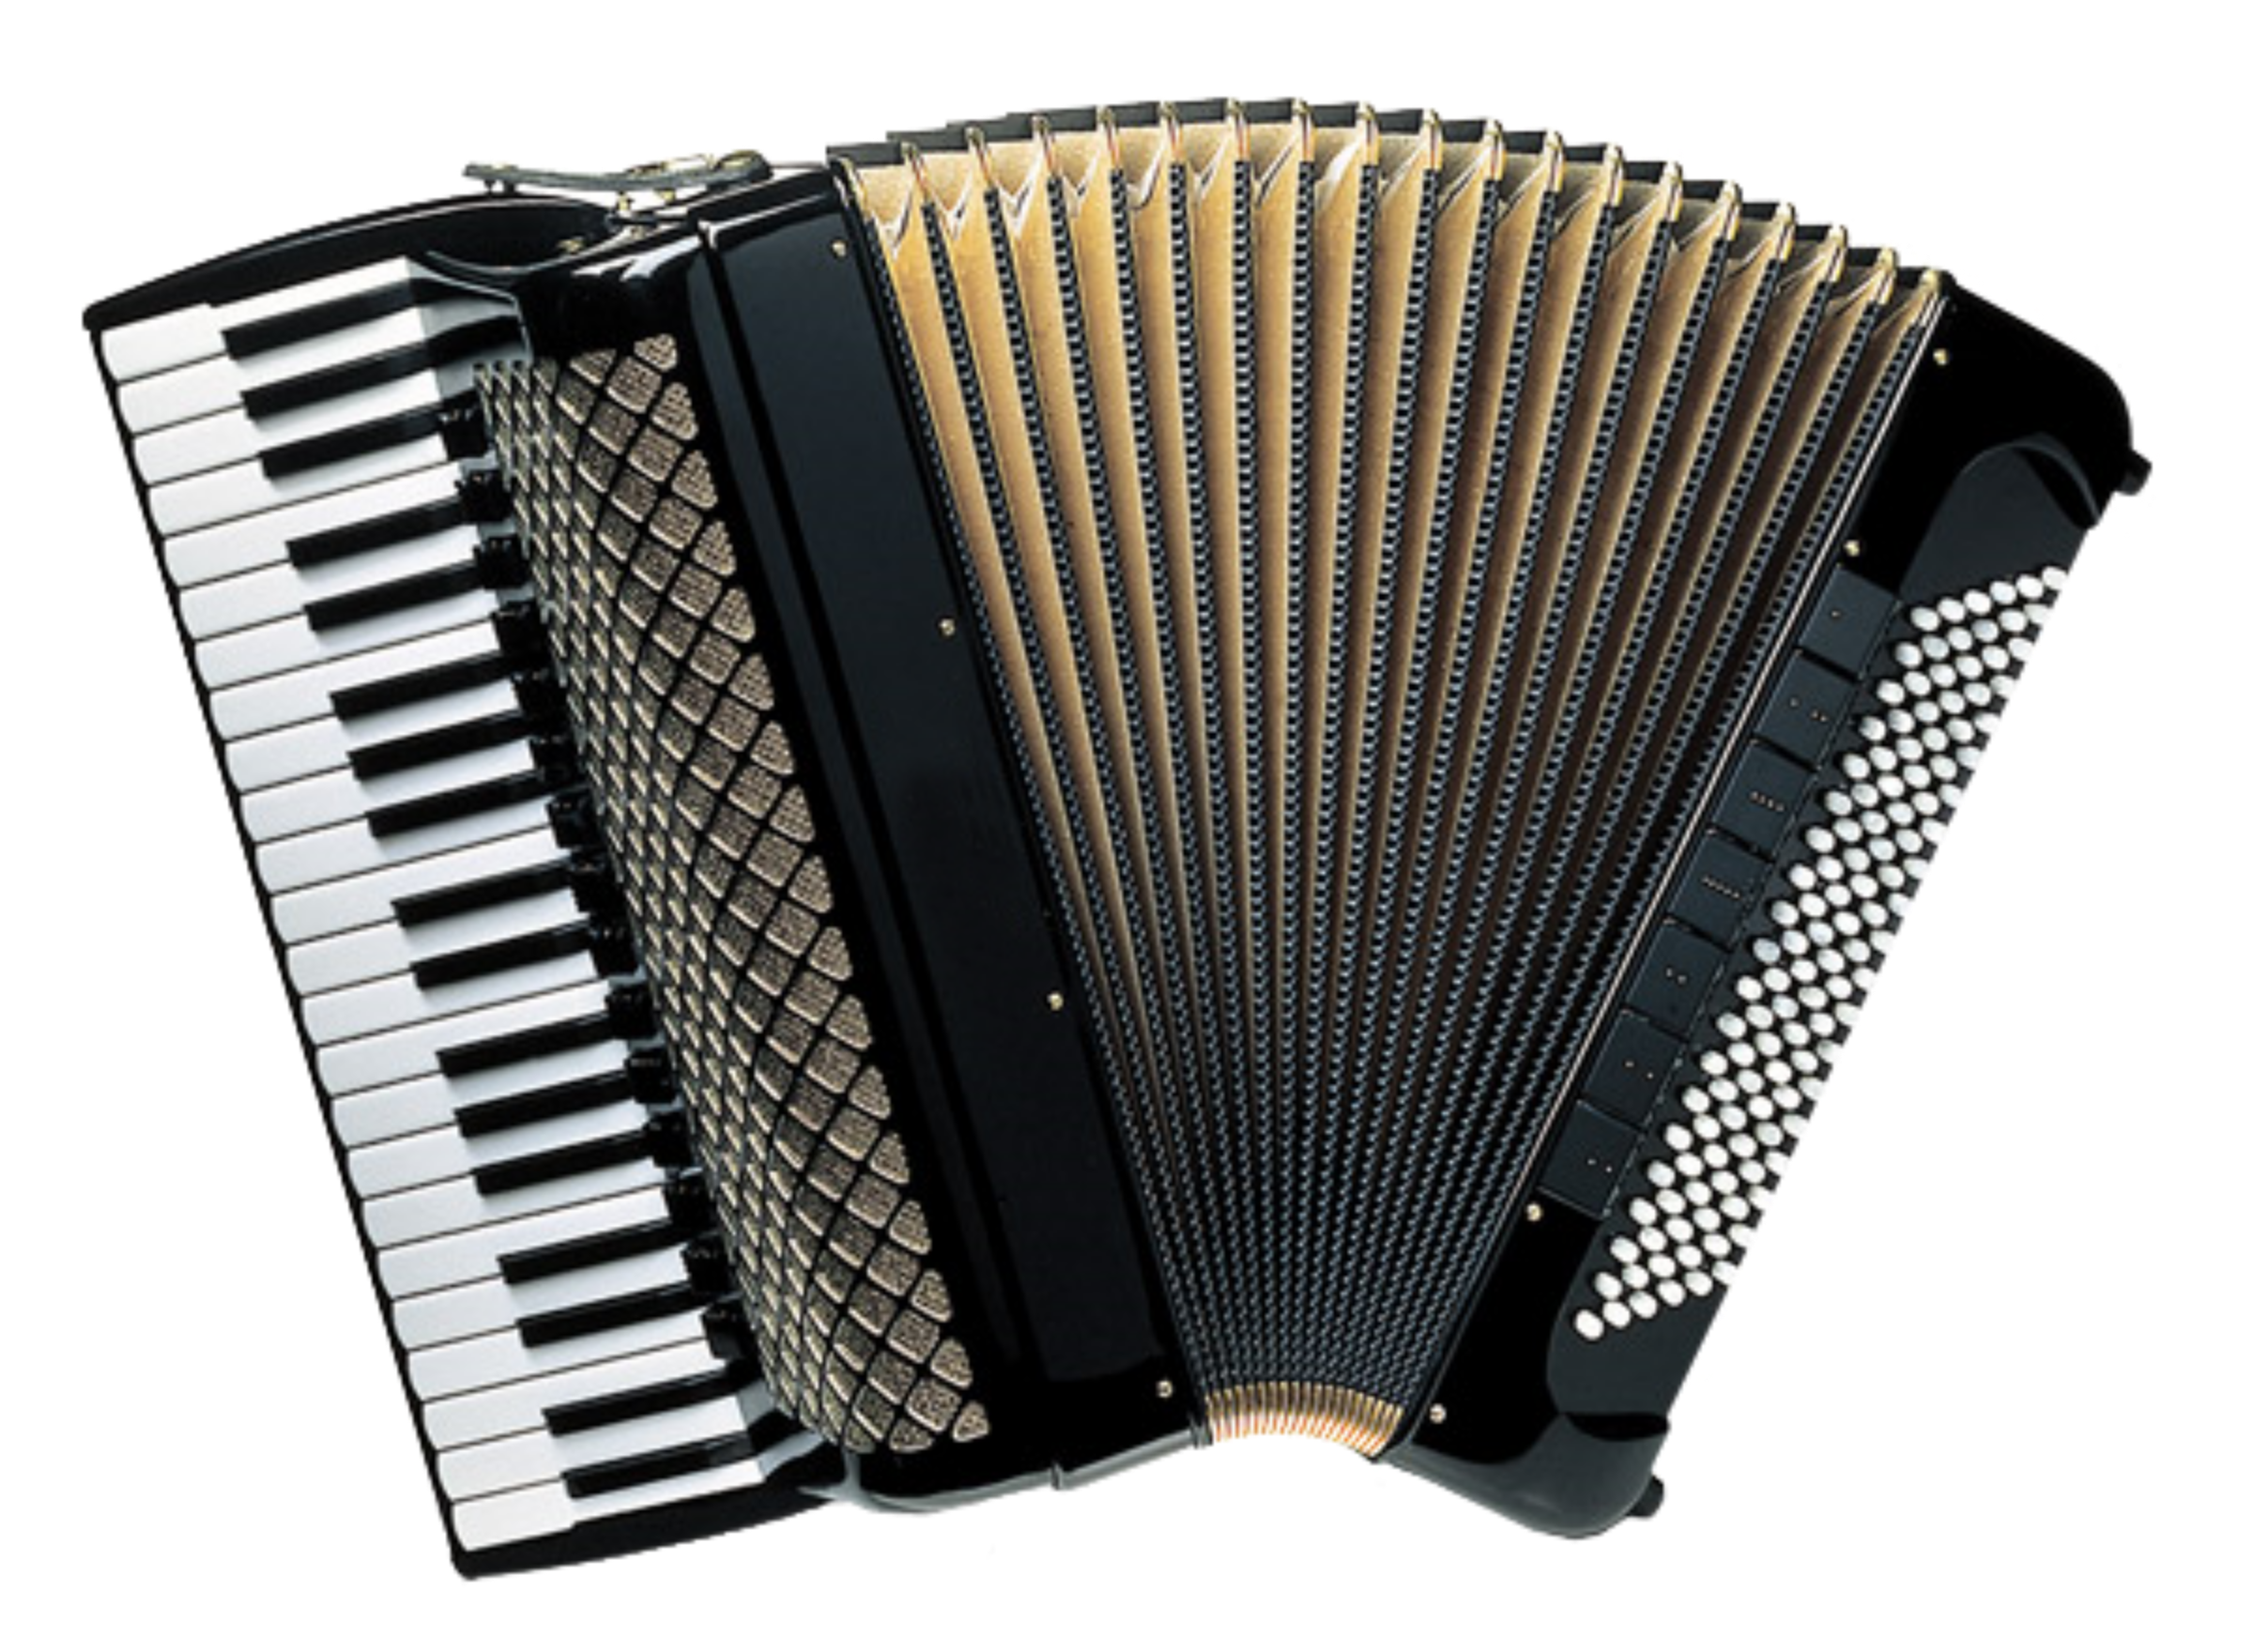 Piano Accordion by Manuela.